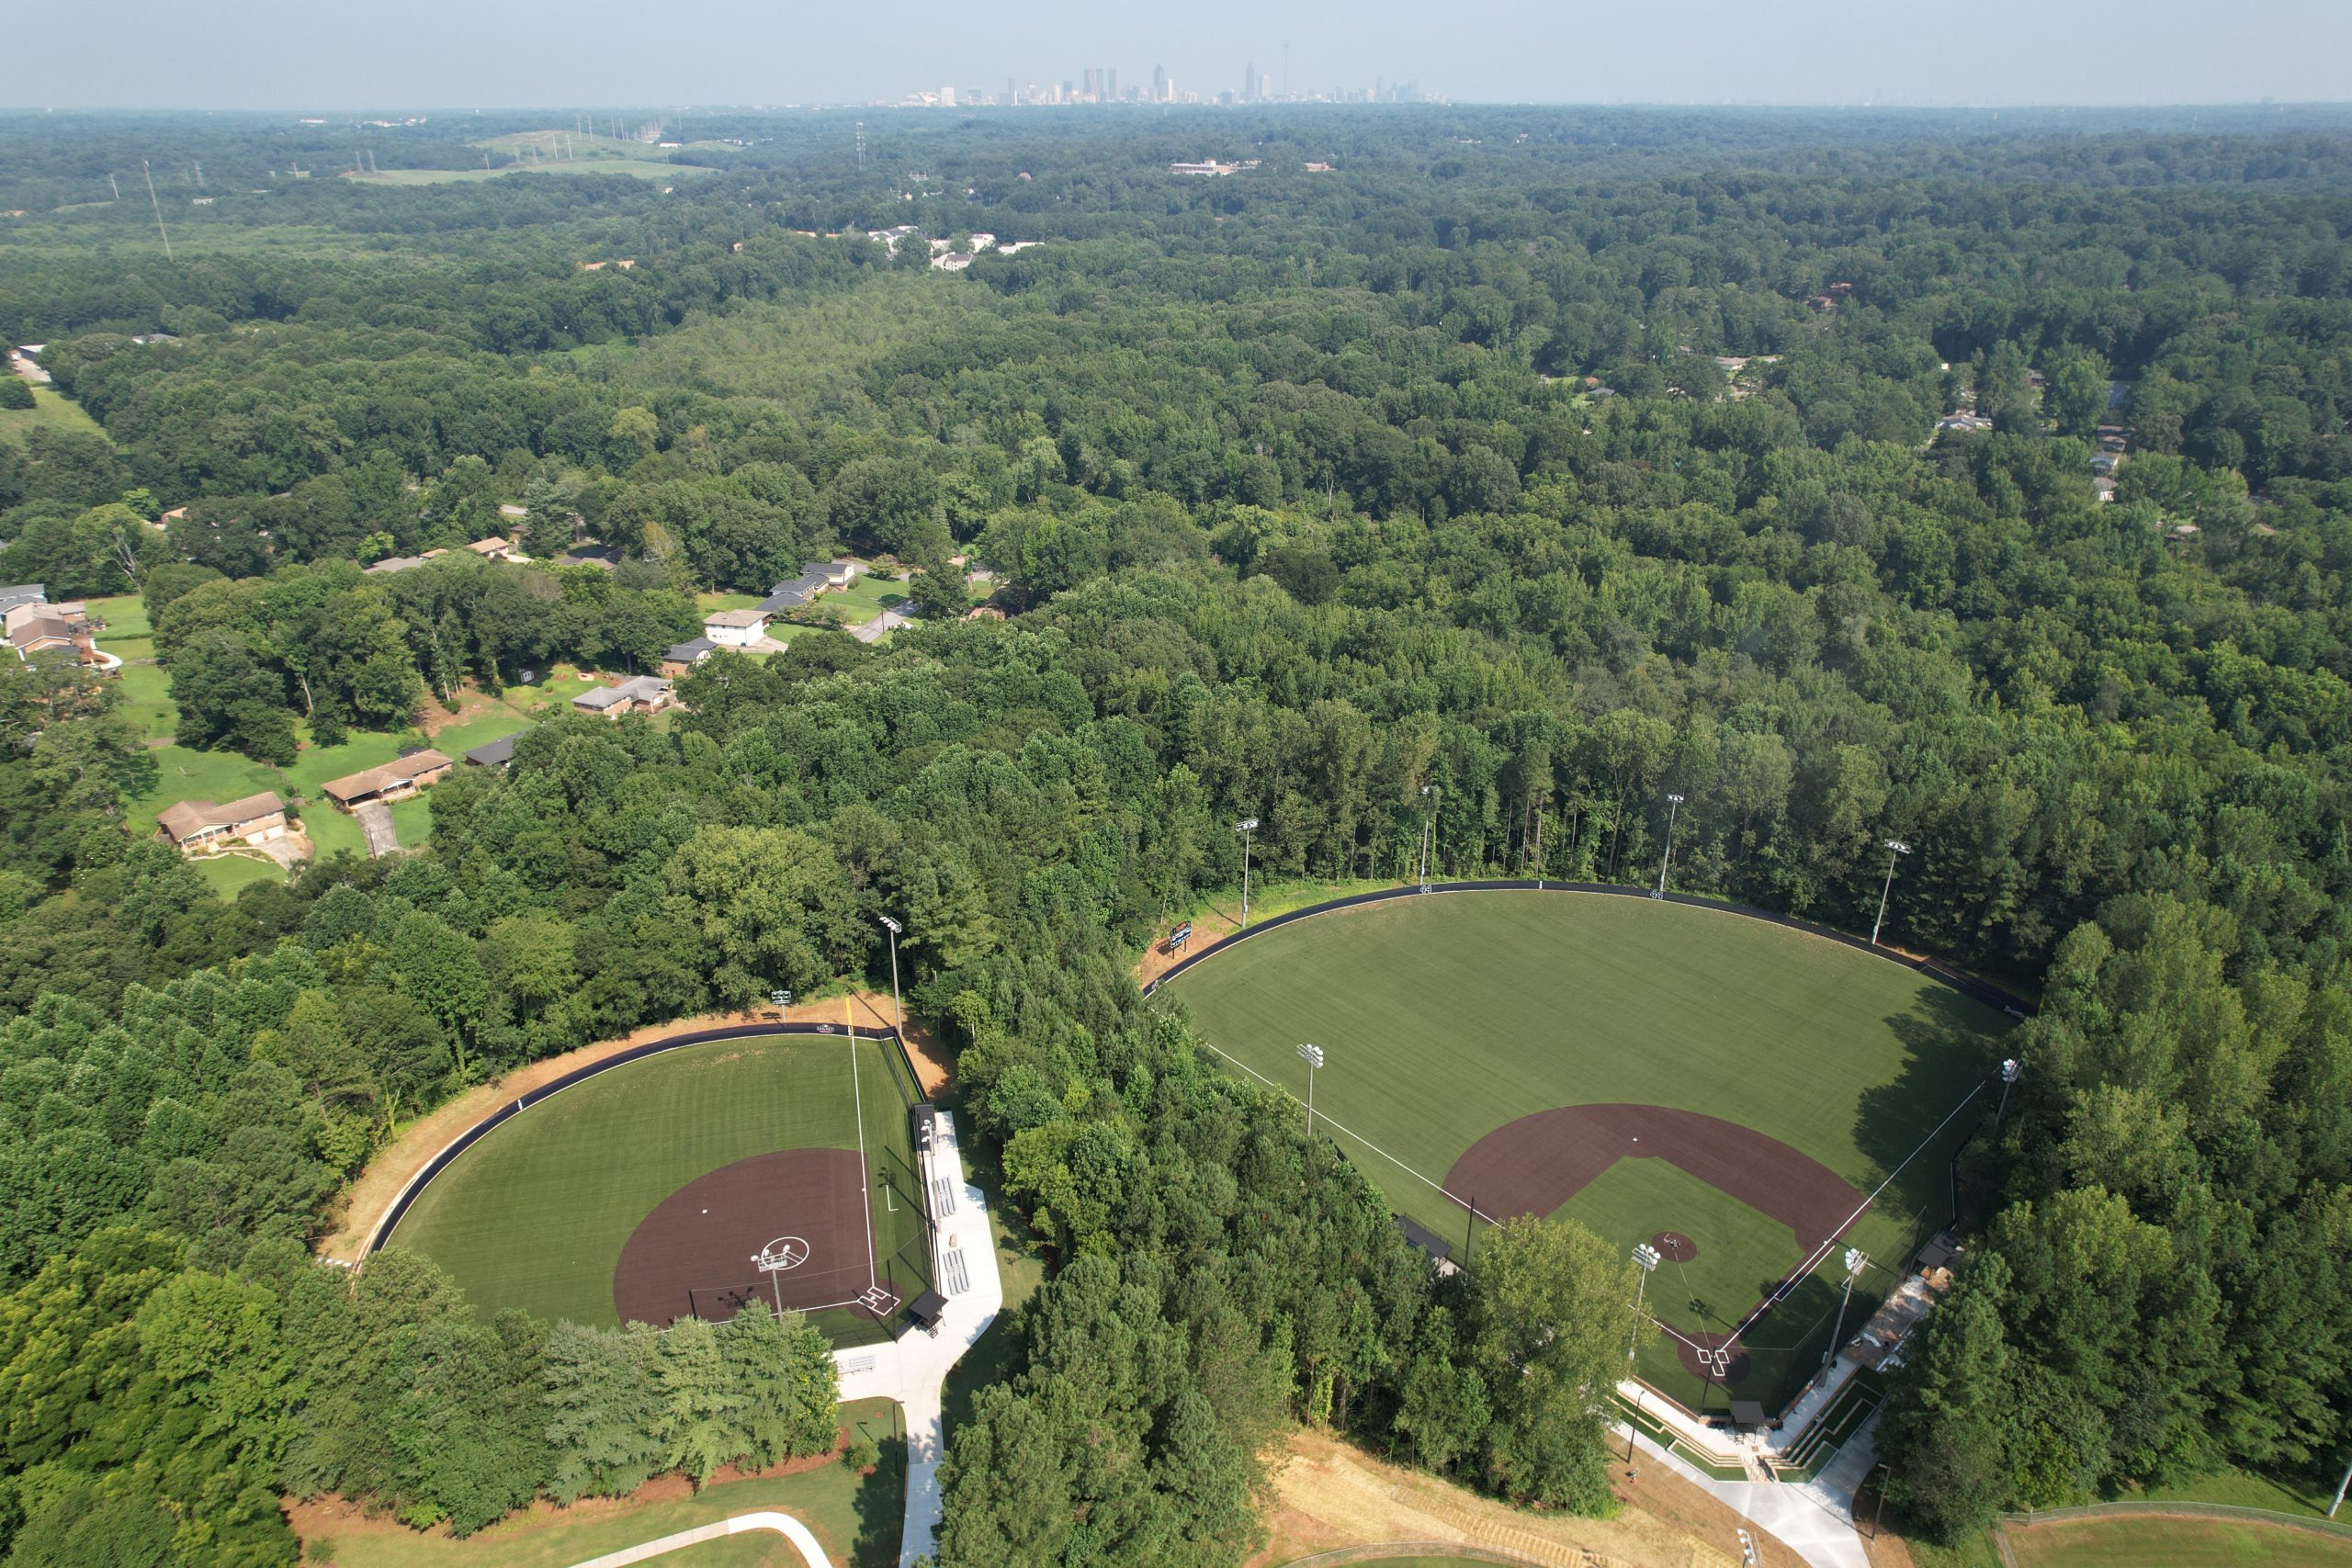 Large Scale Recreational Complexes